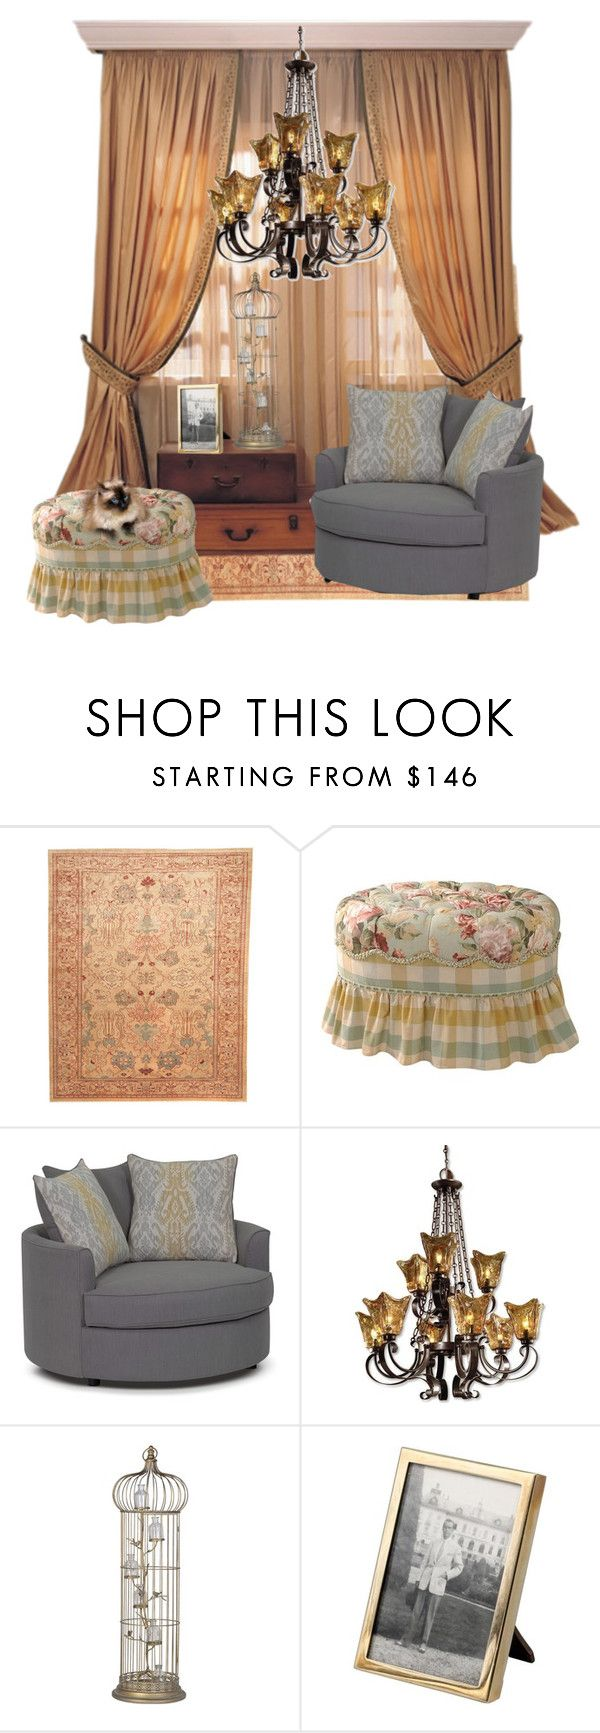 """""""Drab room"""" by sherrysrosecottage-1 ❤ liked on Polyvore featuring interior, interiors, interior design, home, home decor, interior decorating, Herat Oriental, Warehouse, Uttermost and Tiffany & Co."""